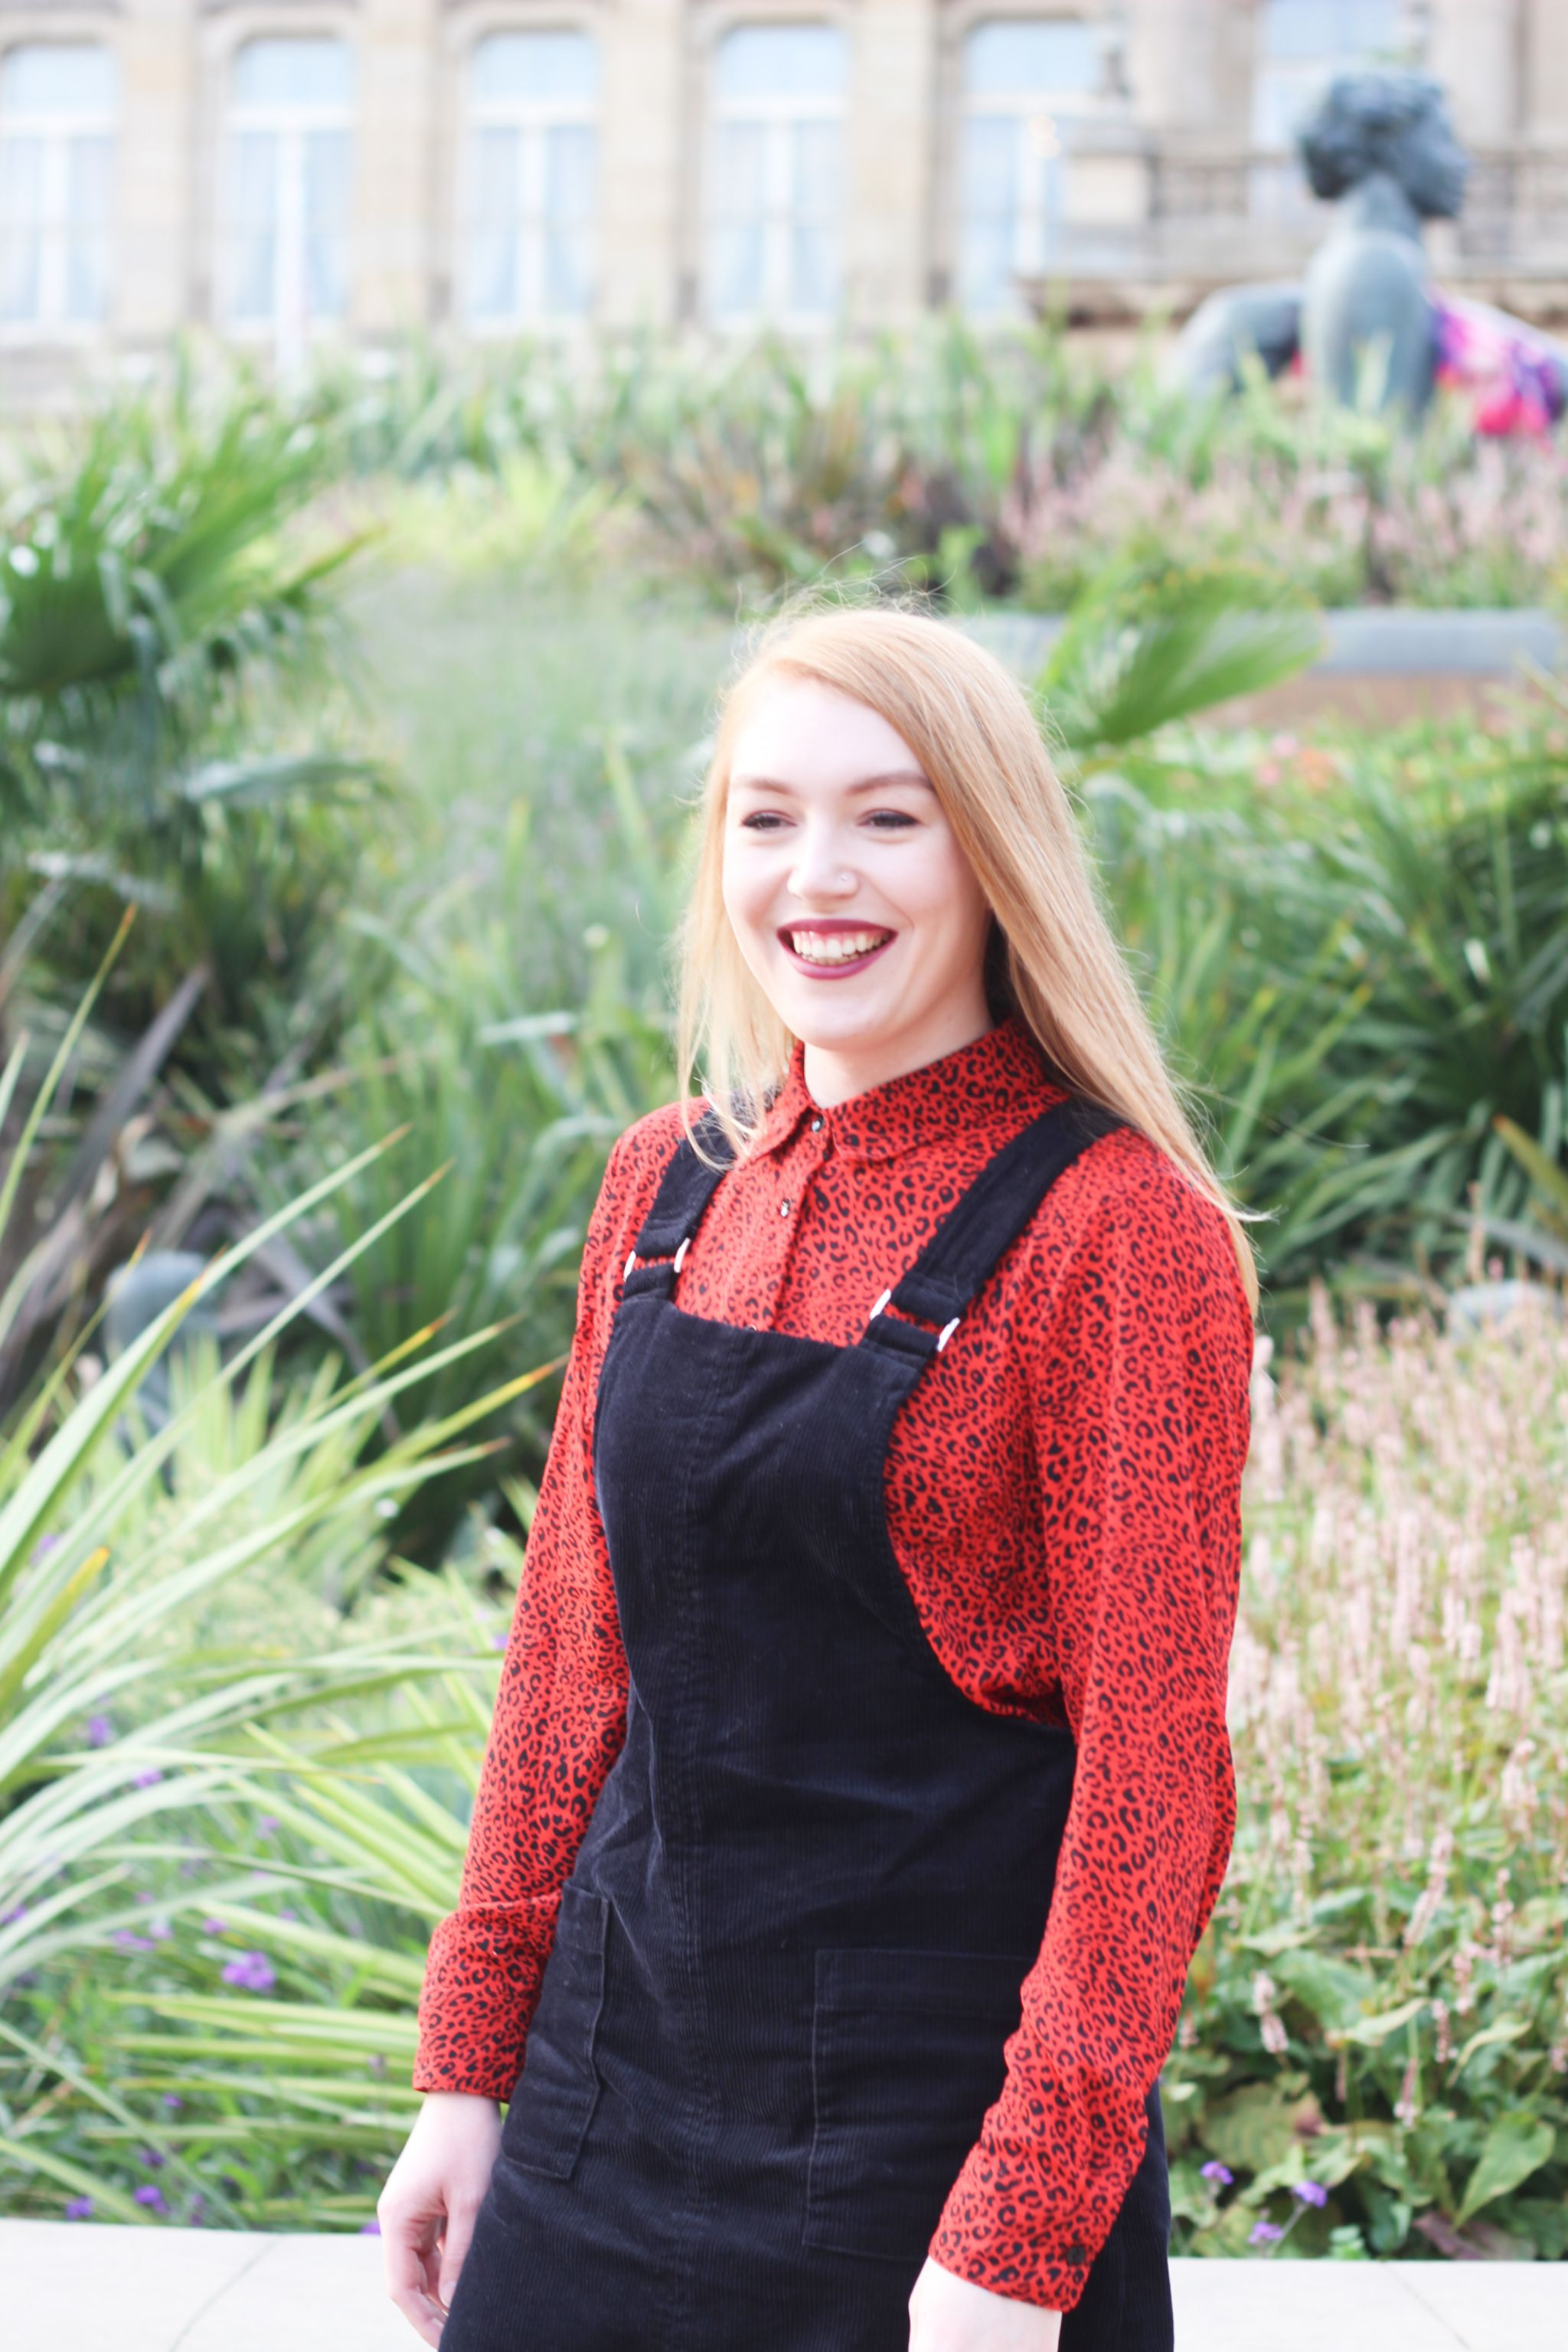 University Me in Red Leopard Print Shirt and Cord Pinafore